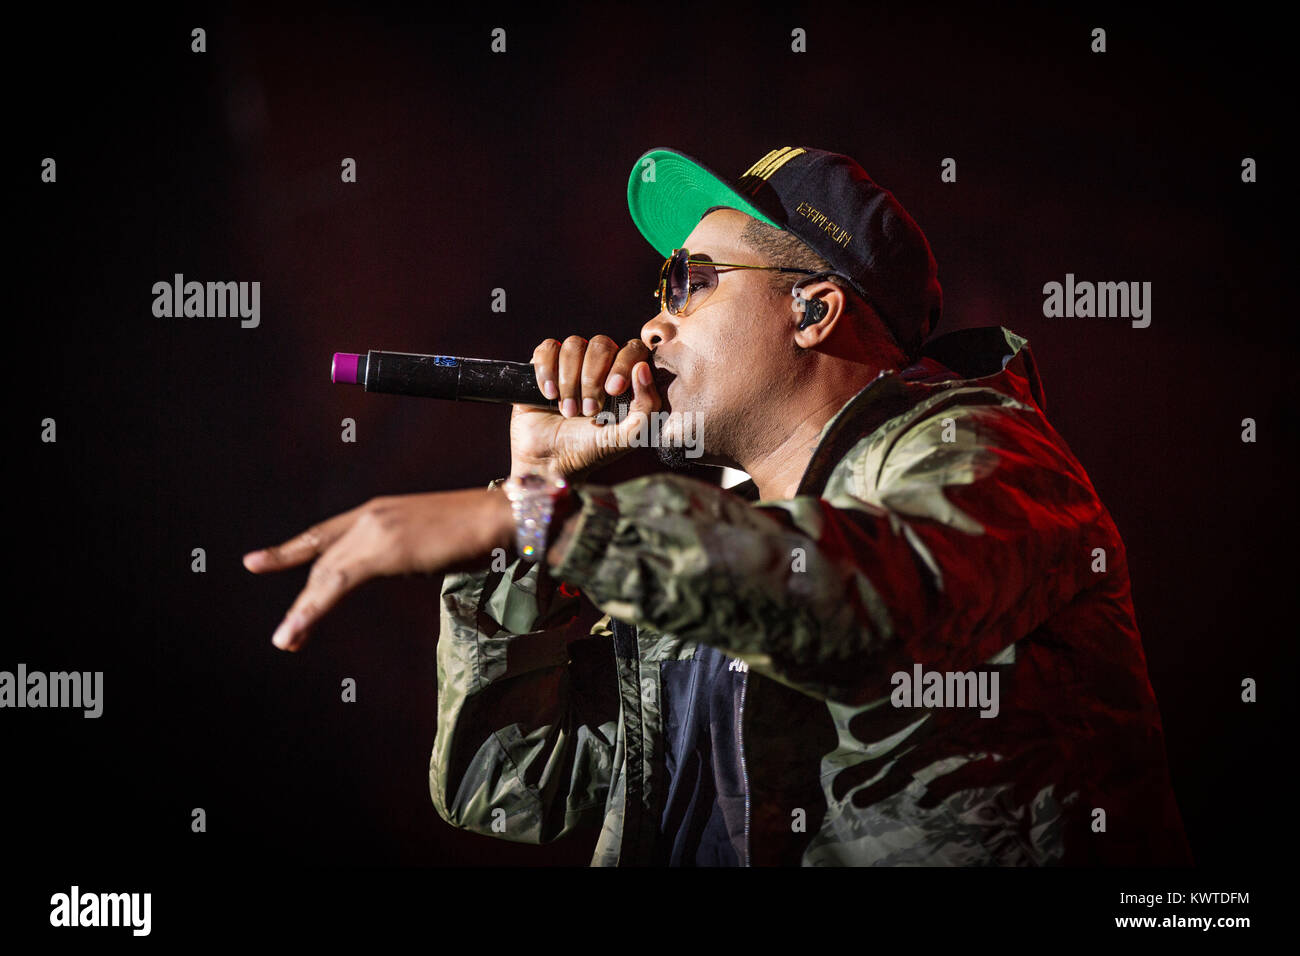 The American rapper and lyricist Nas performs a live concert during the Danish music festival Roskilde Festival Stock Photo